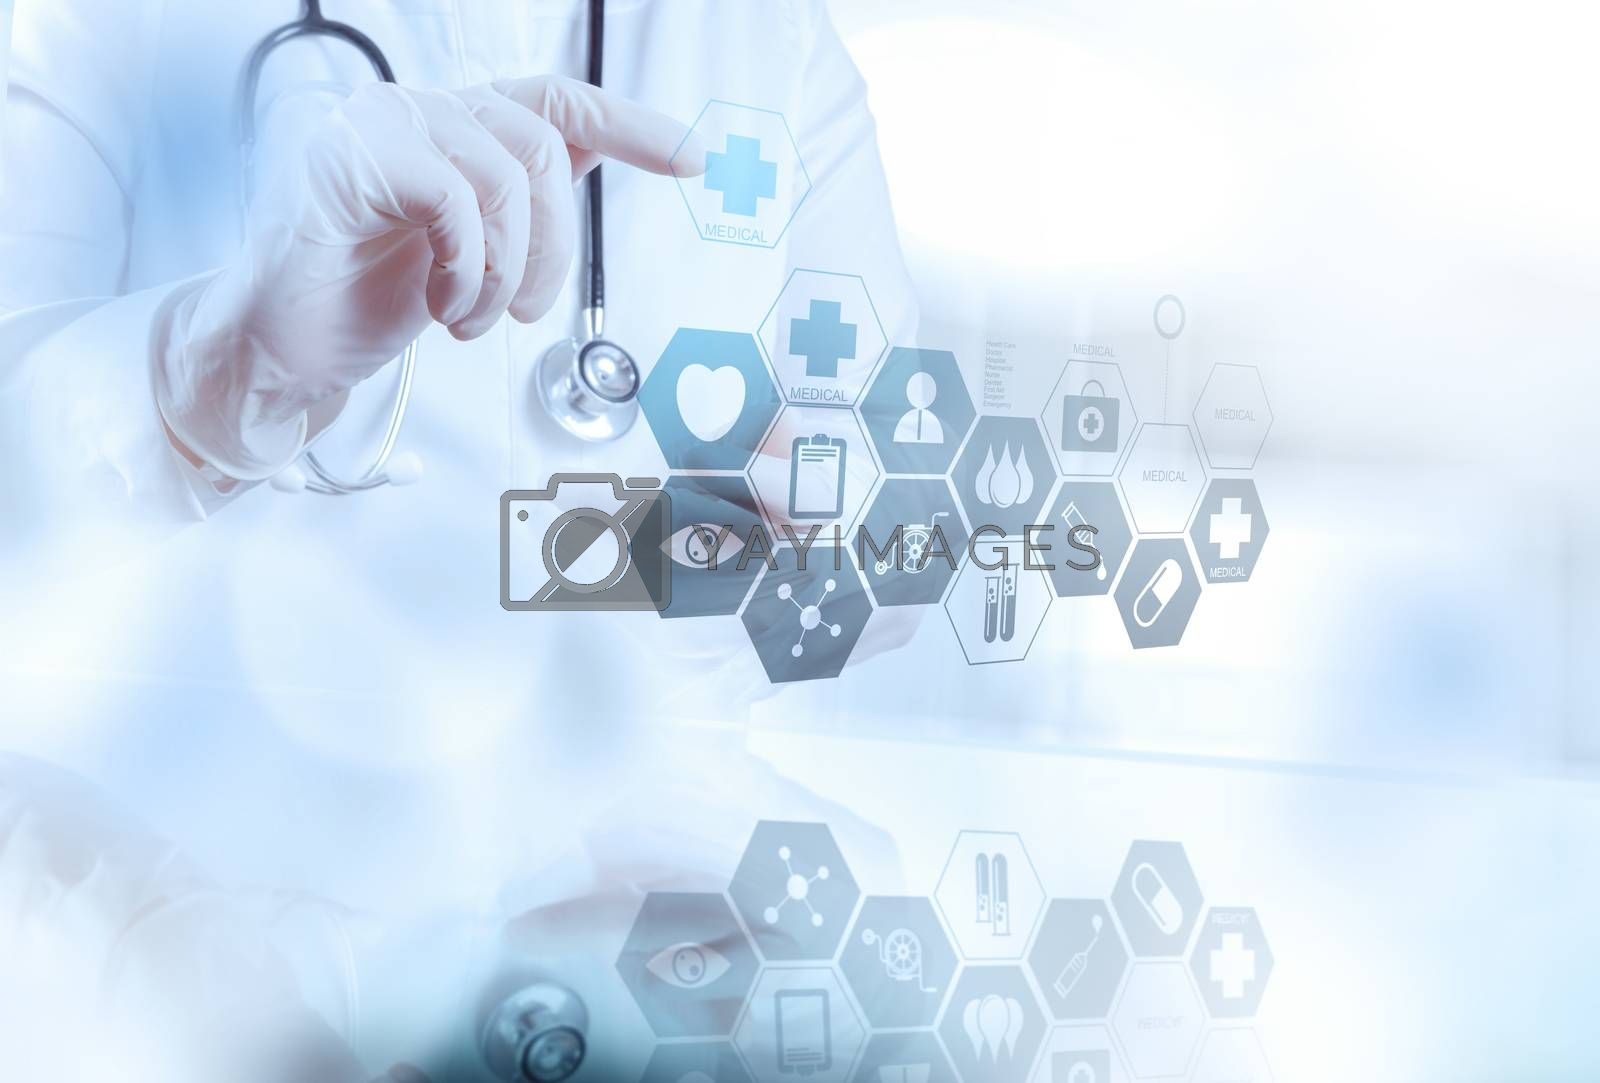 Royalty free image of smart medical doctor working with operating room as concept  by everythingpossible